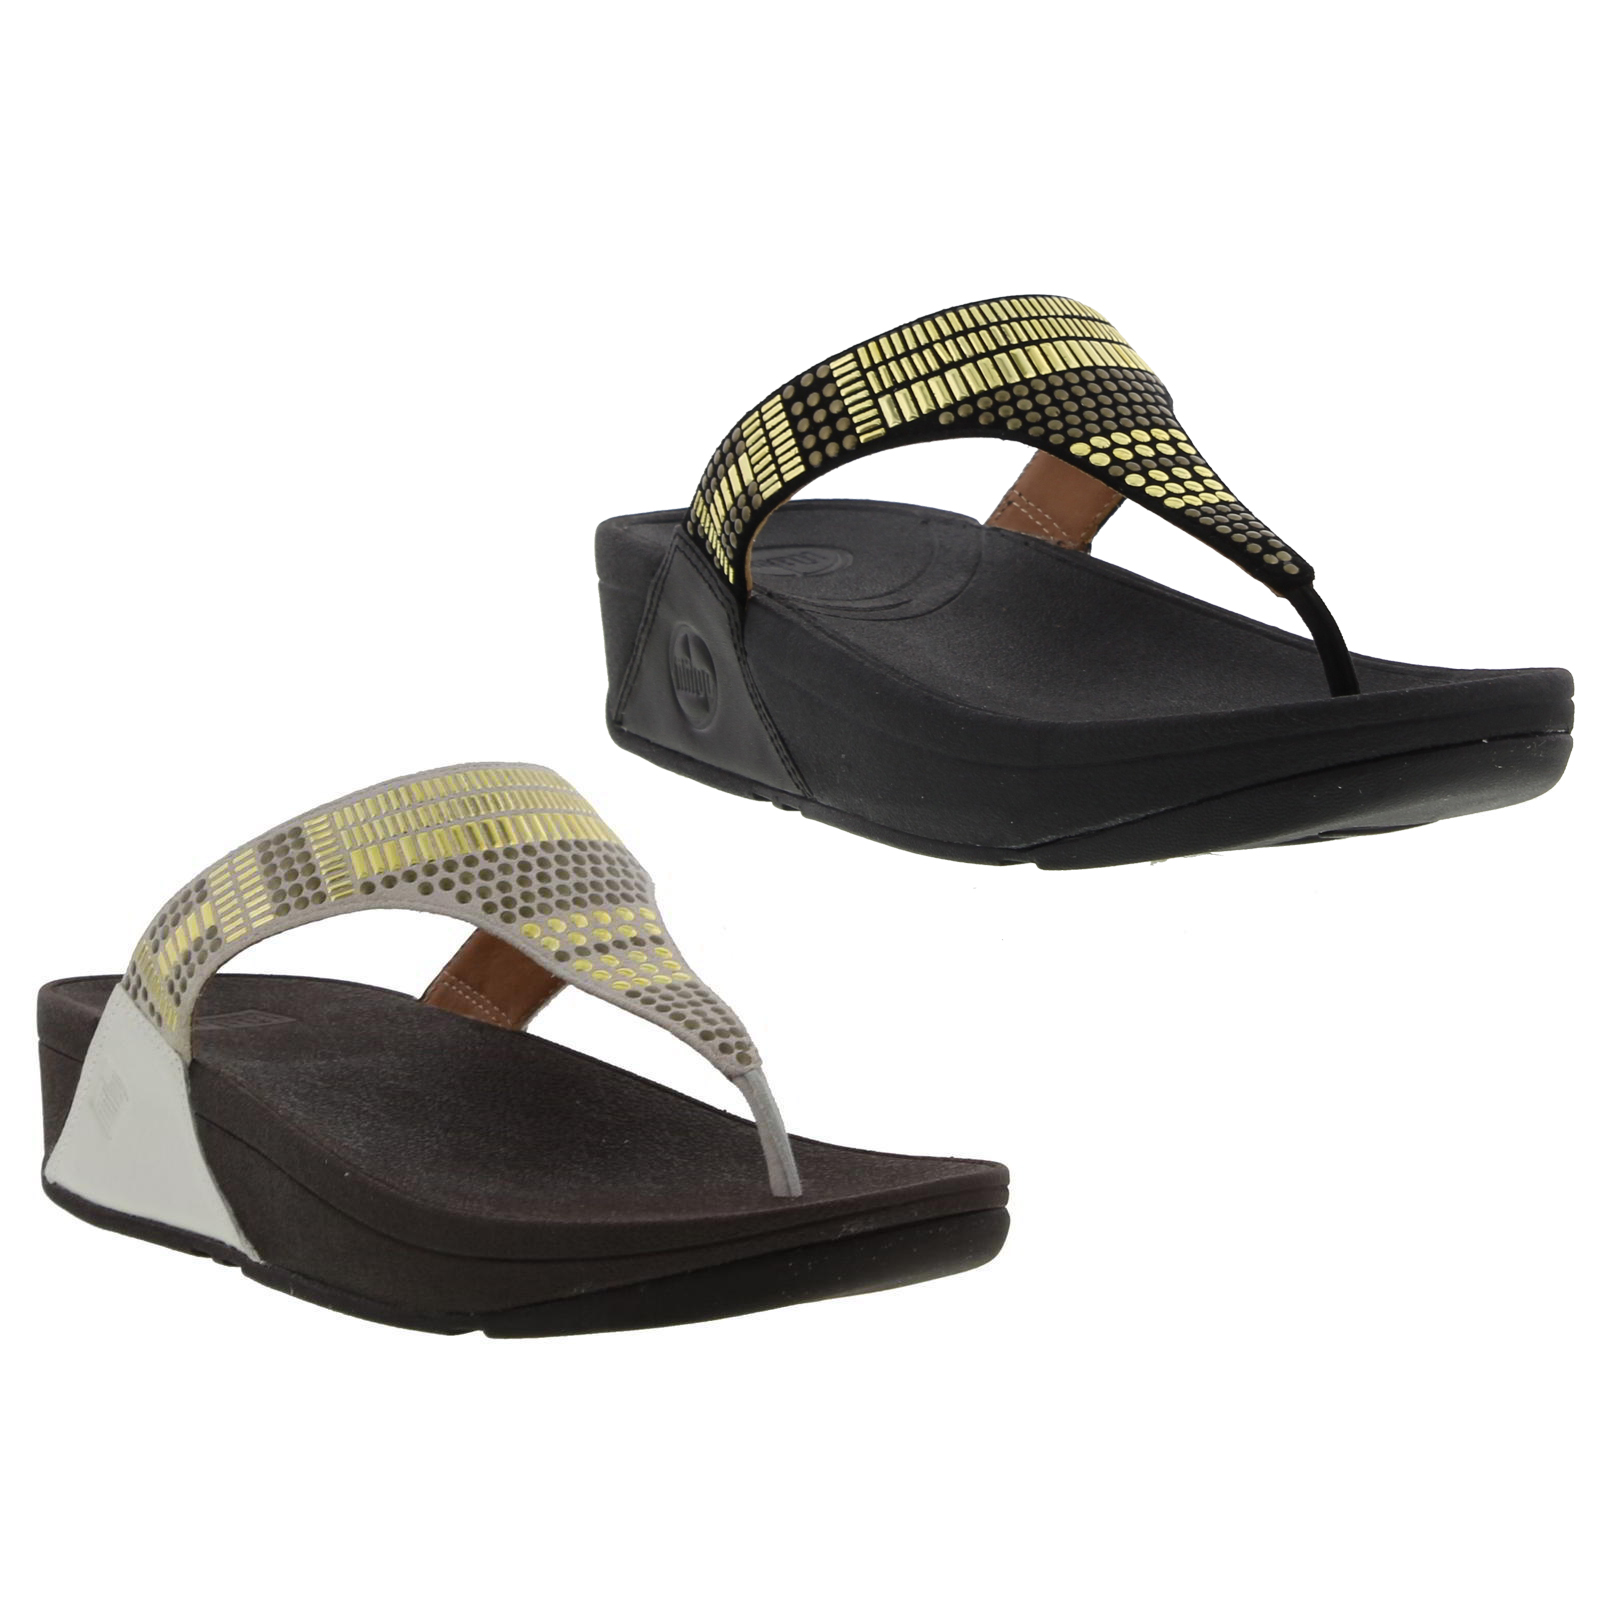 52afa073ba58 Fitflop Sale Size 4 Related Keywords   Suggestions - Fitflop Sale ...